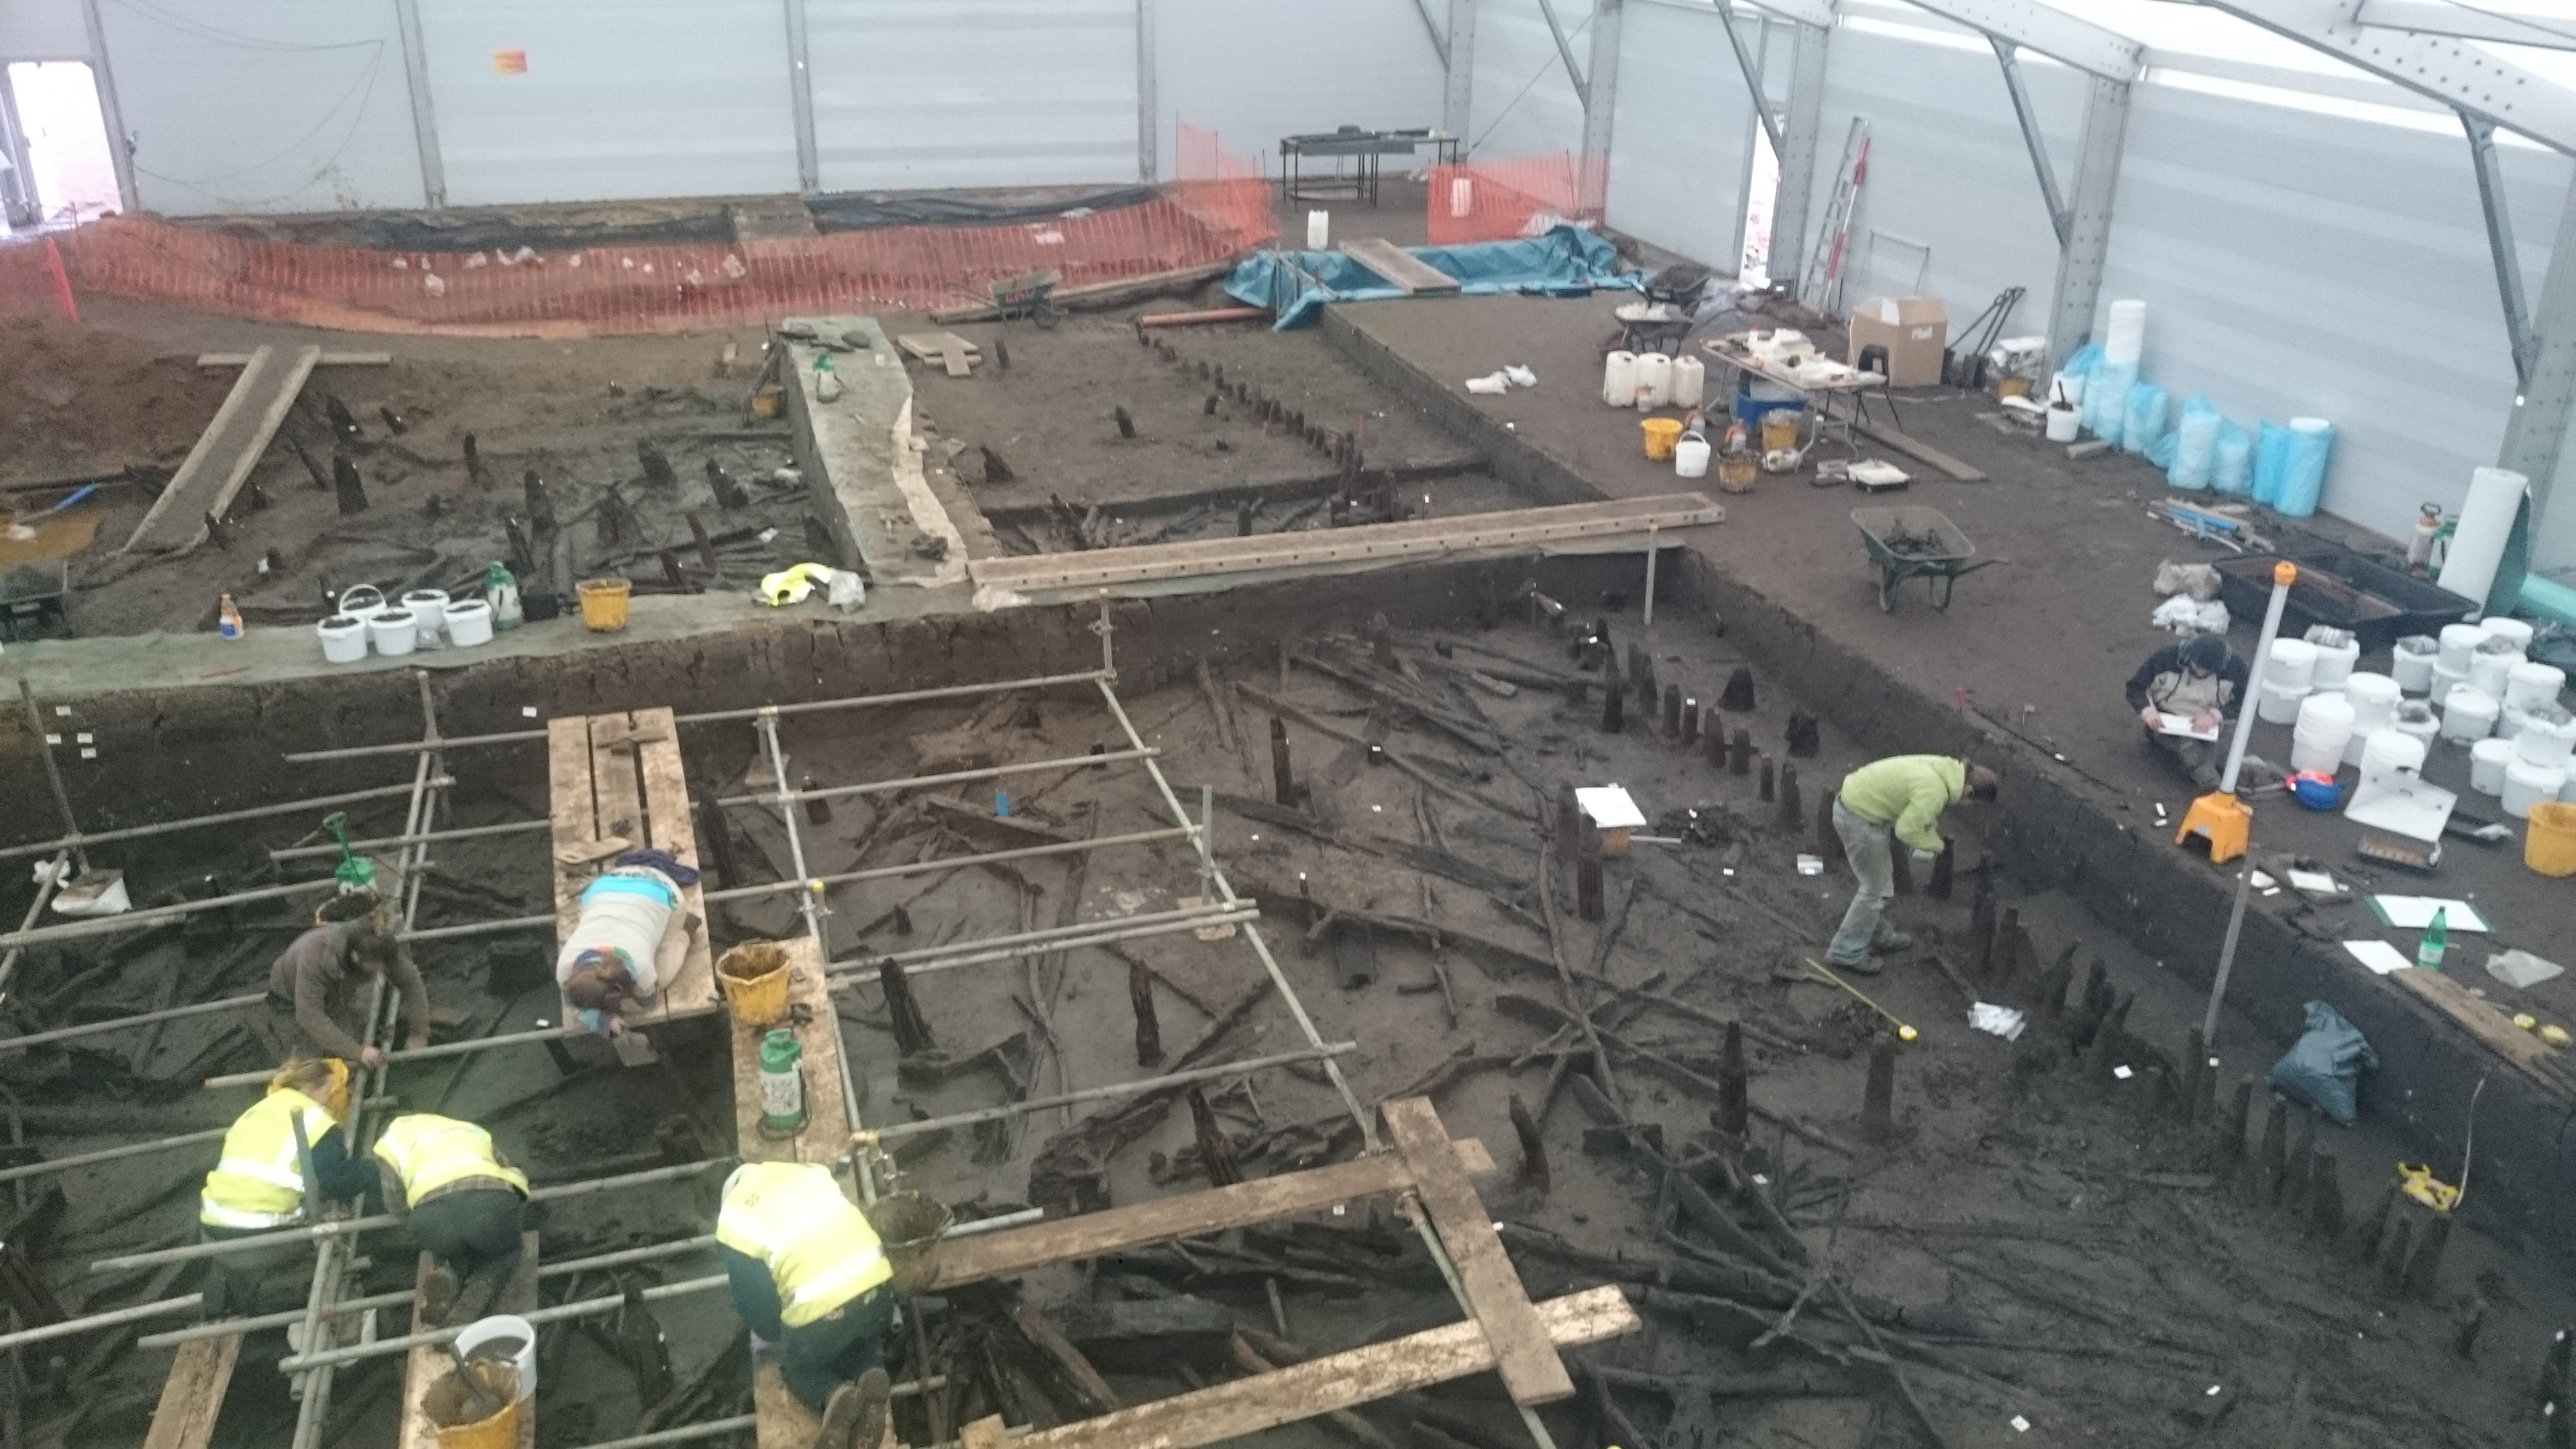 The Must Farm site being excavated